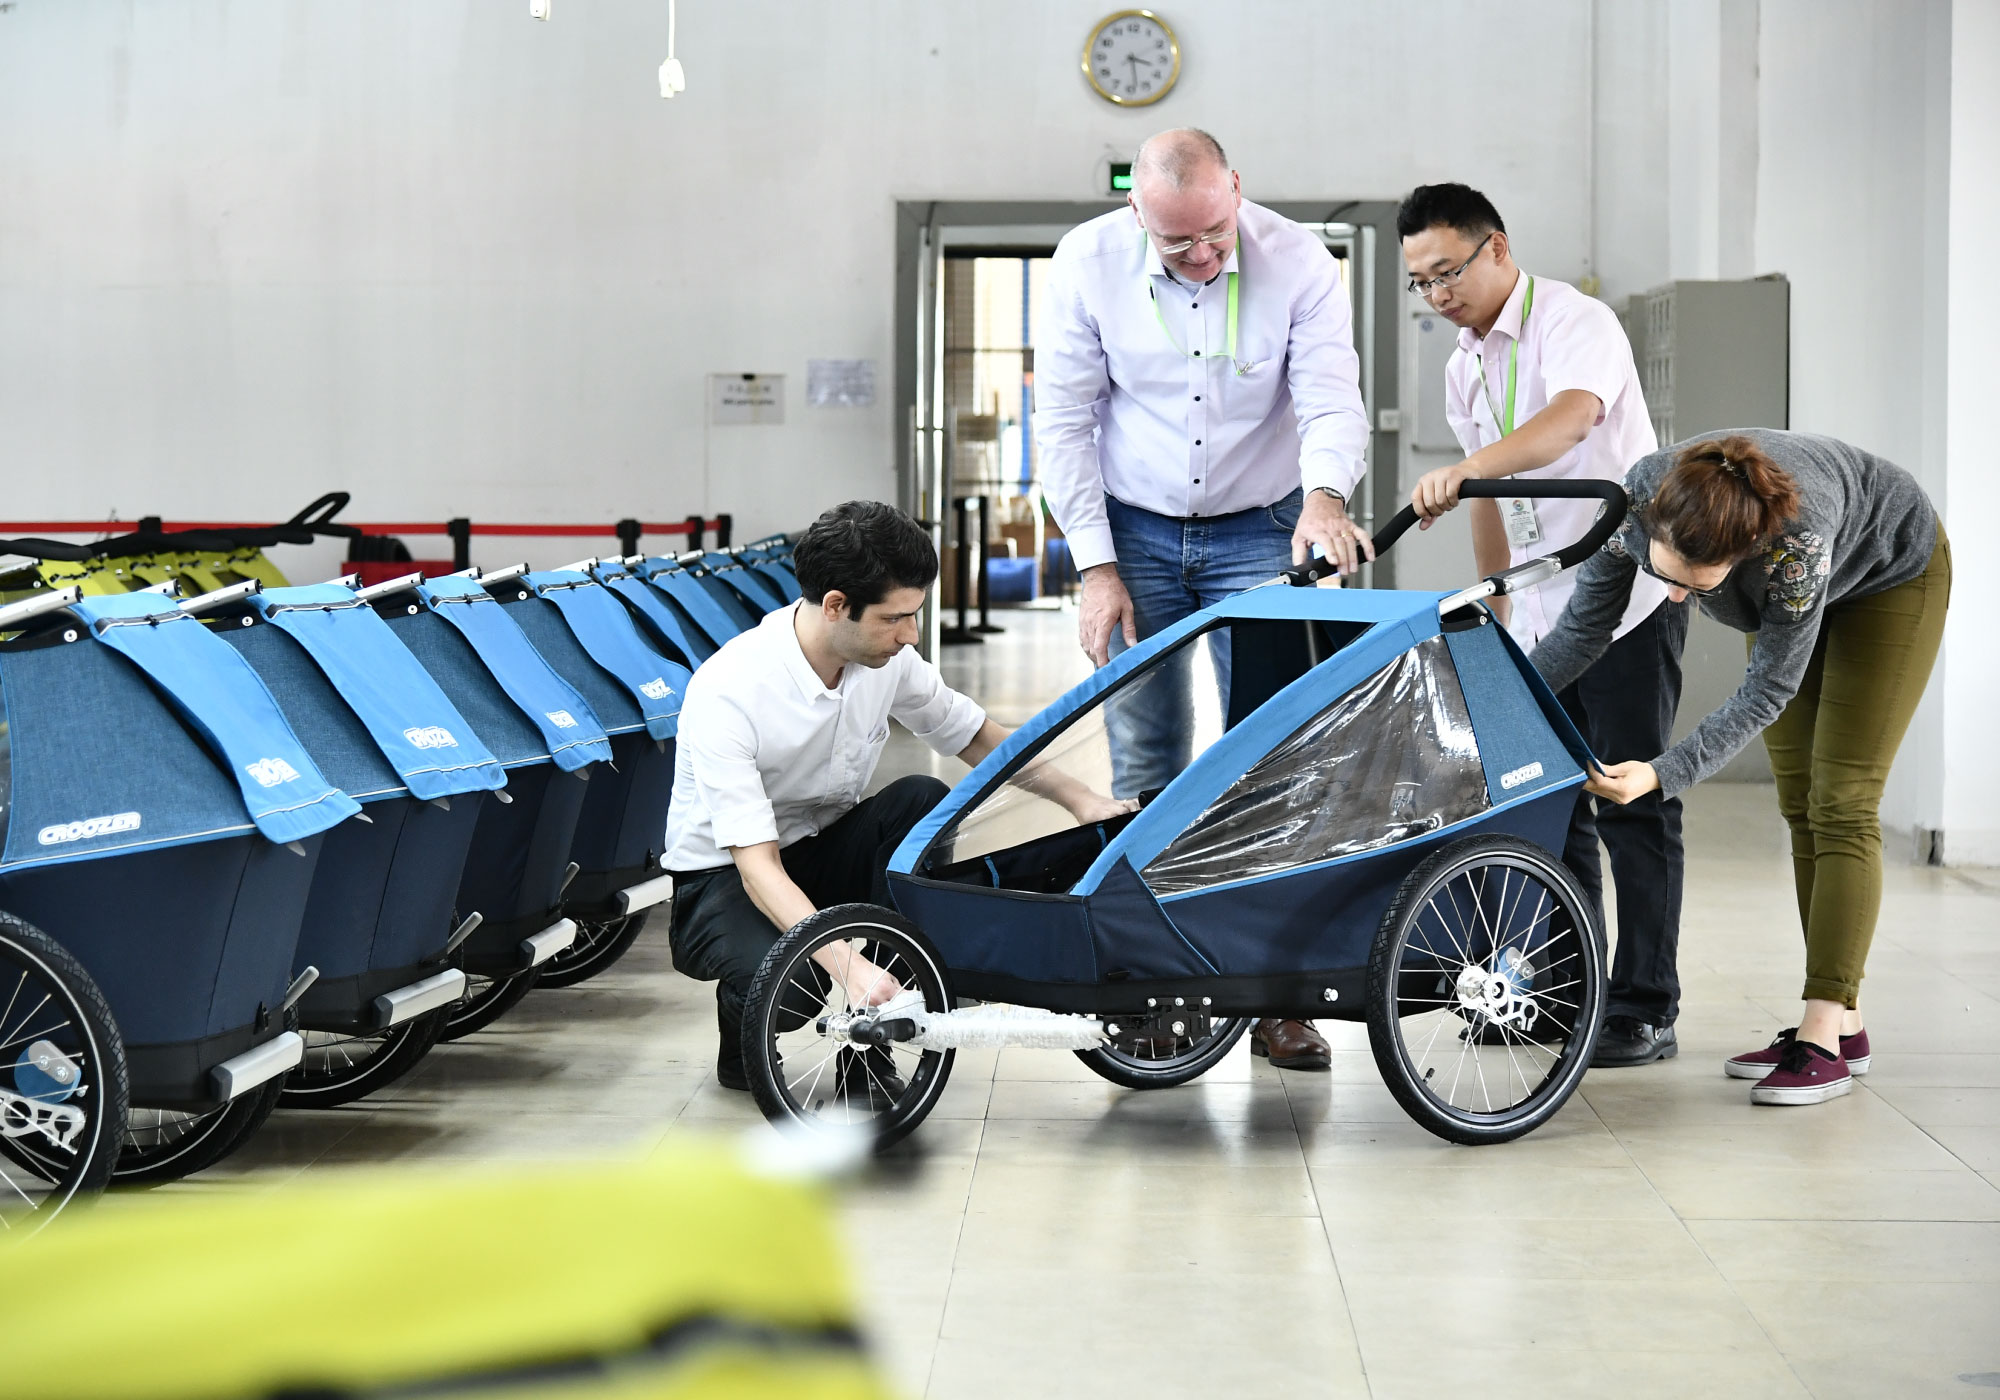 Production floor of Tetro with customer and production manager looking at a bike trailer of Croozer